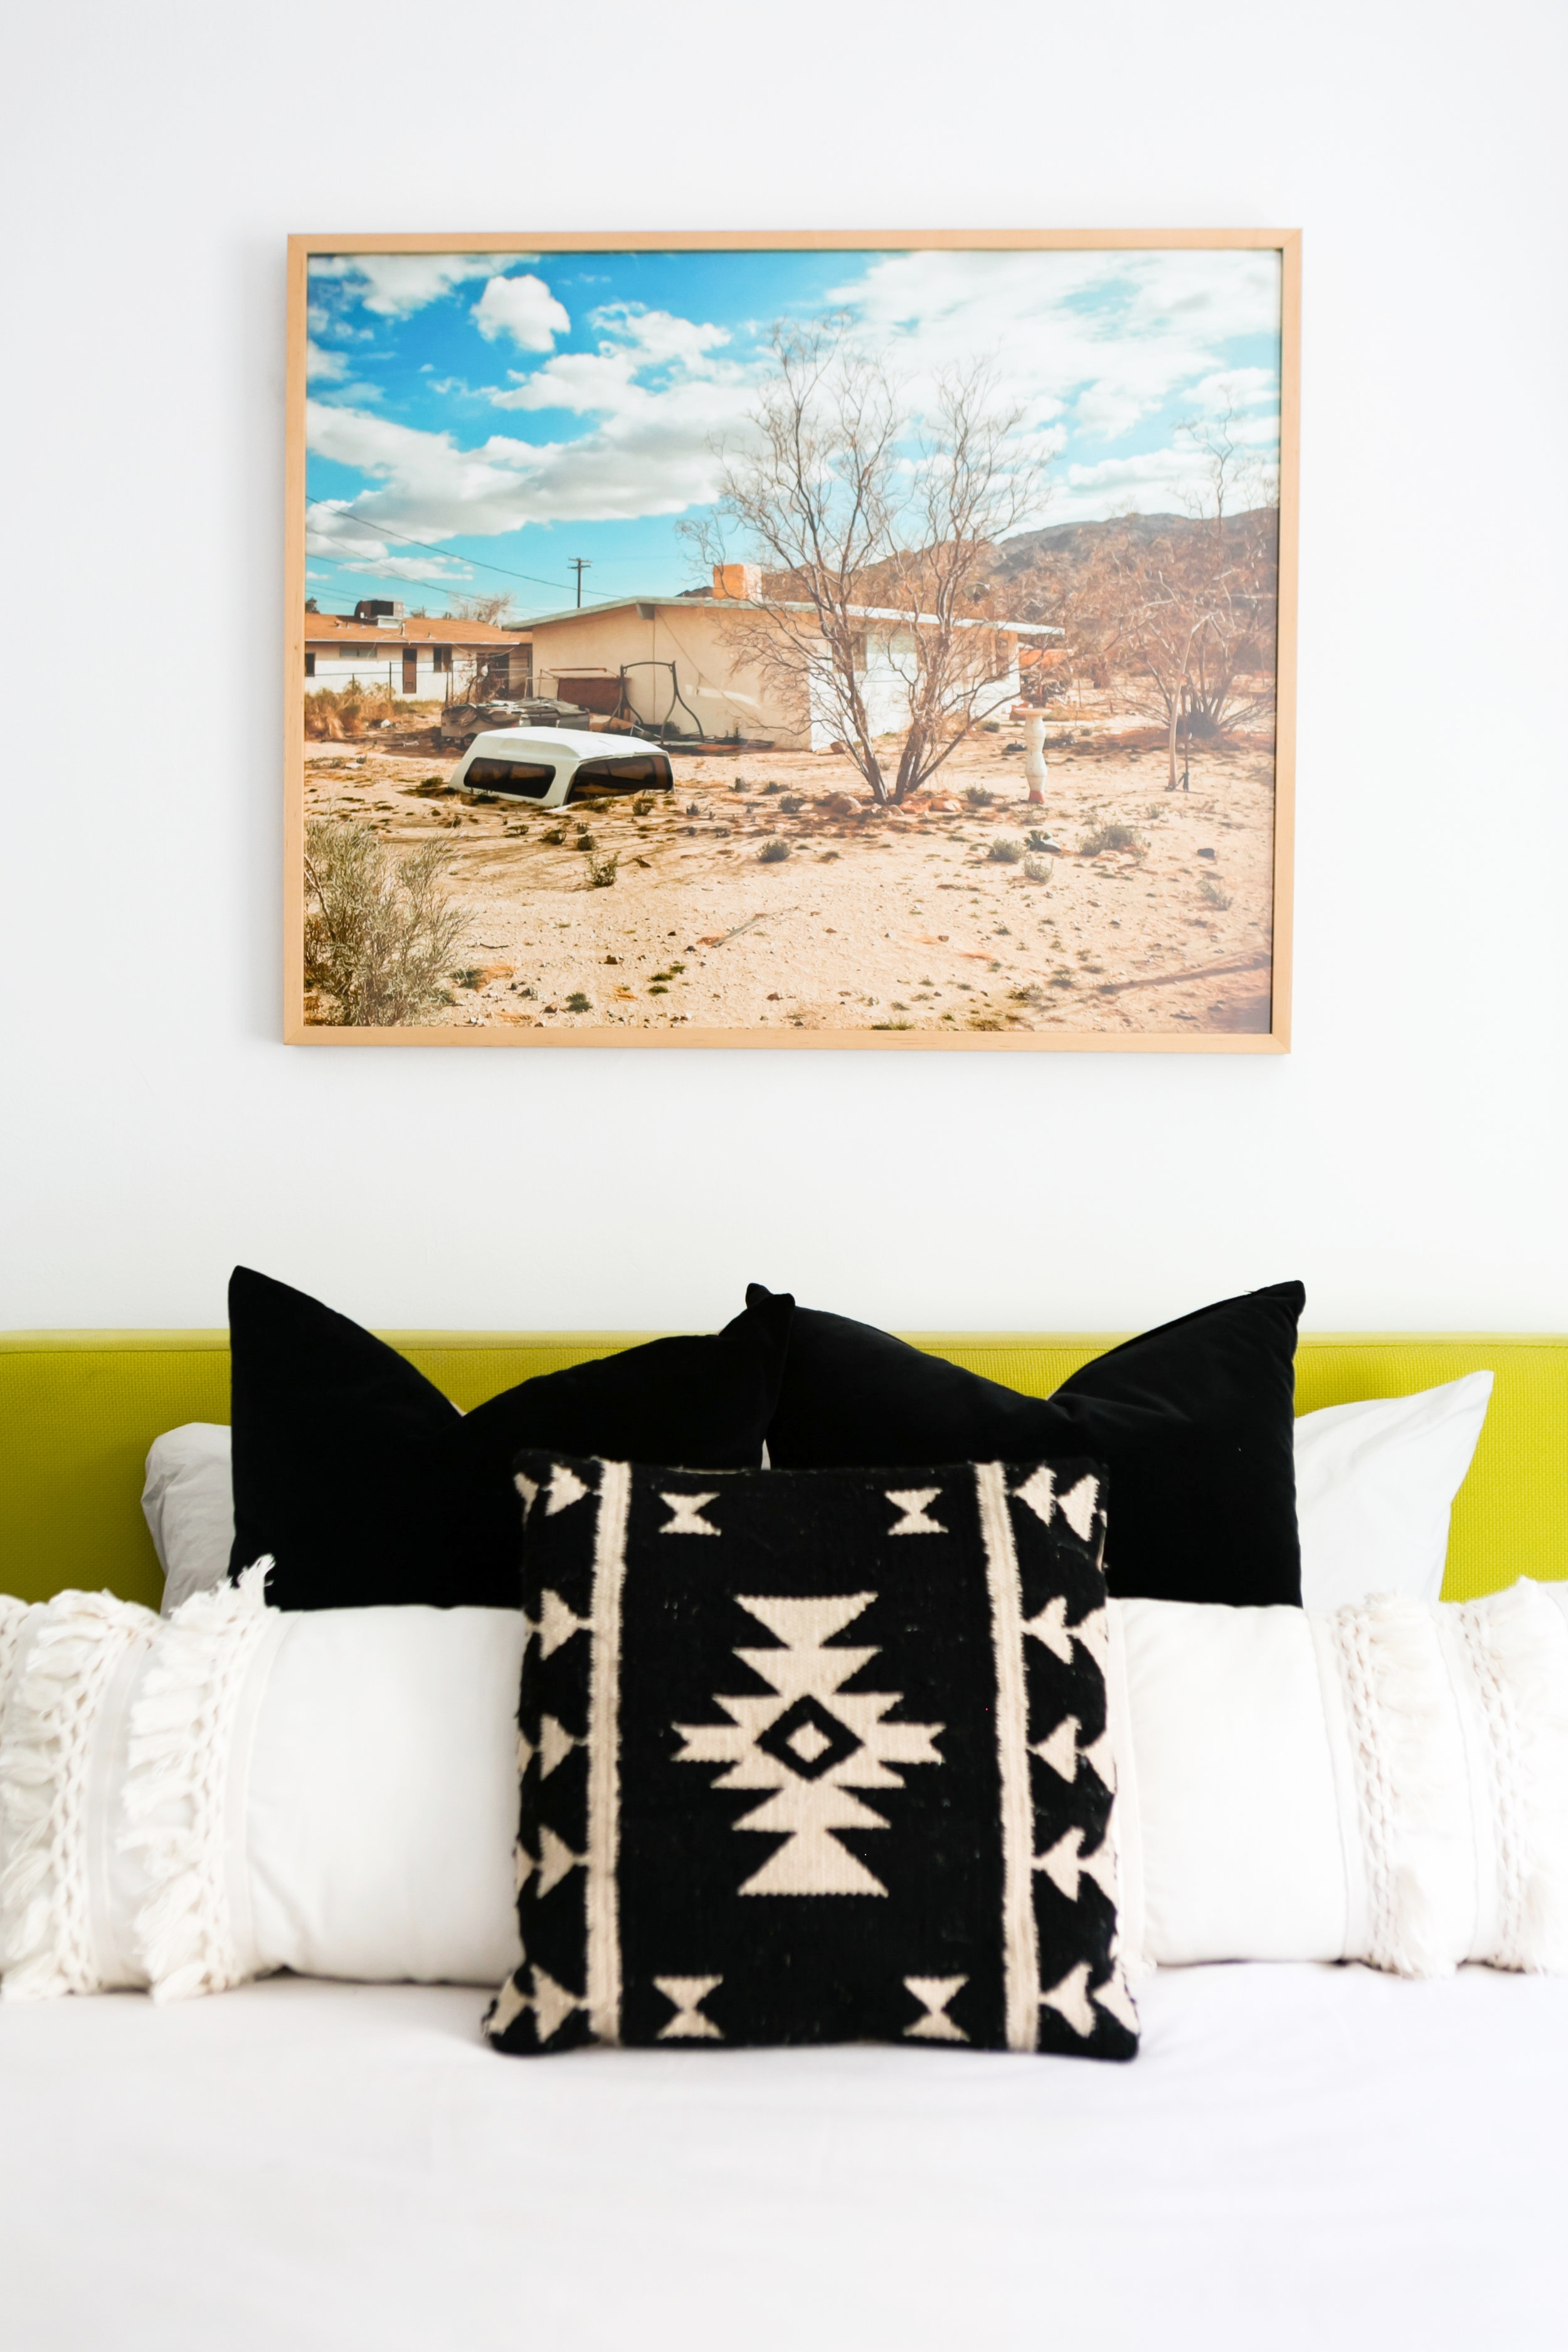 The Guest Room - We wanted to make the guest room feel boho, chic, and comfortable but also wanted to combine some of the items we already had in our house into the mix so the results were a super eclectic mix with brands ranging from Design Within Reach to Target Style. The centerpiece of the room is the photography by Rick Rodney, framed by Framebridge.